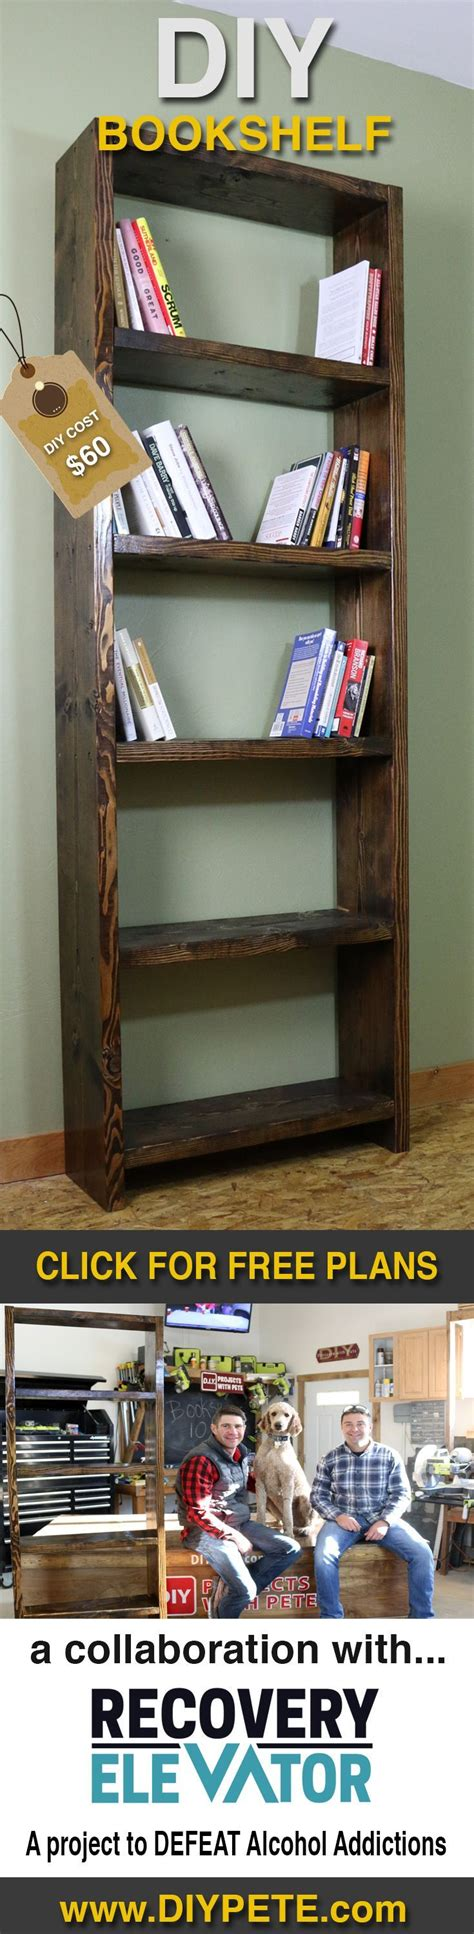 how to build a bookcase for beginners a simple diy bookshelf and how hobbies have a positive